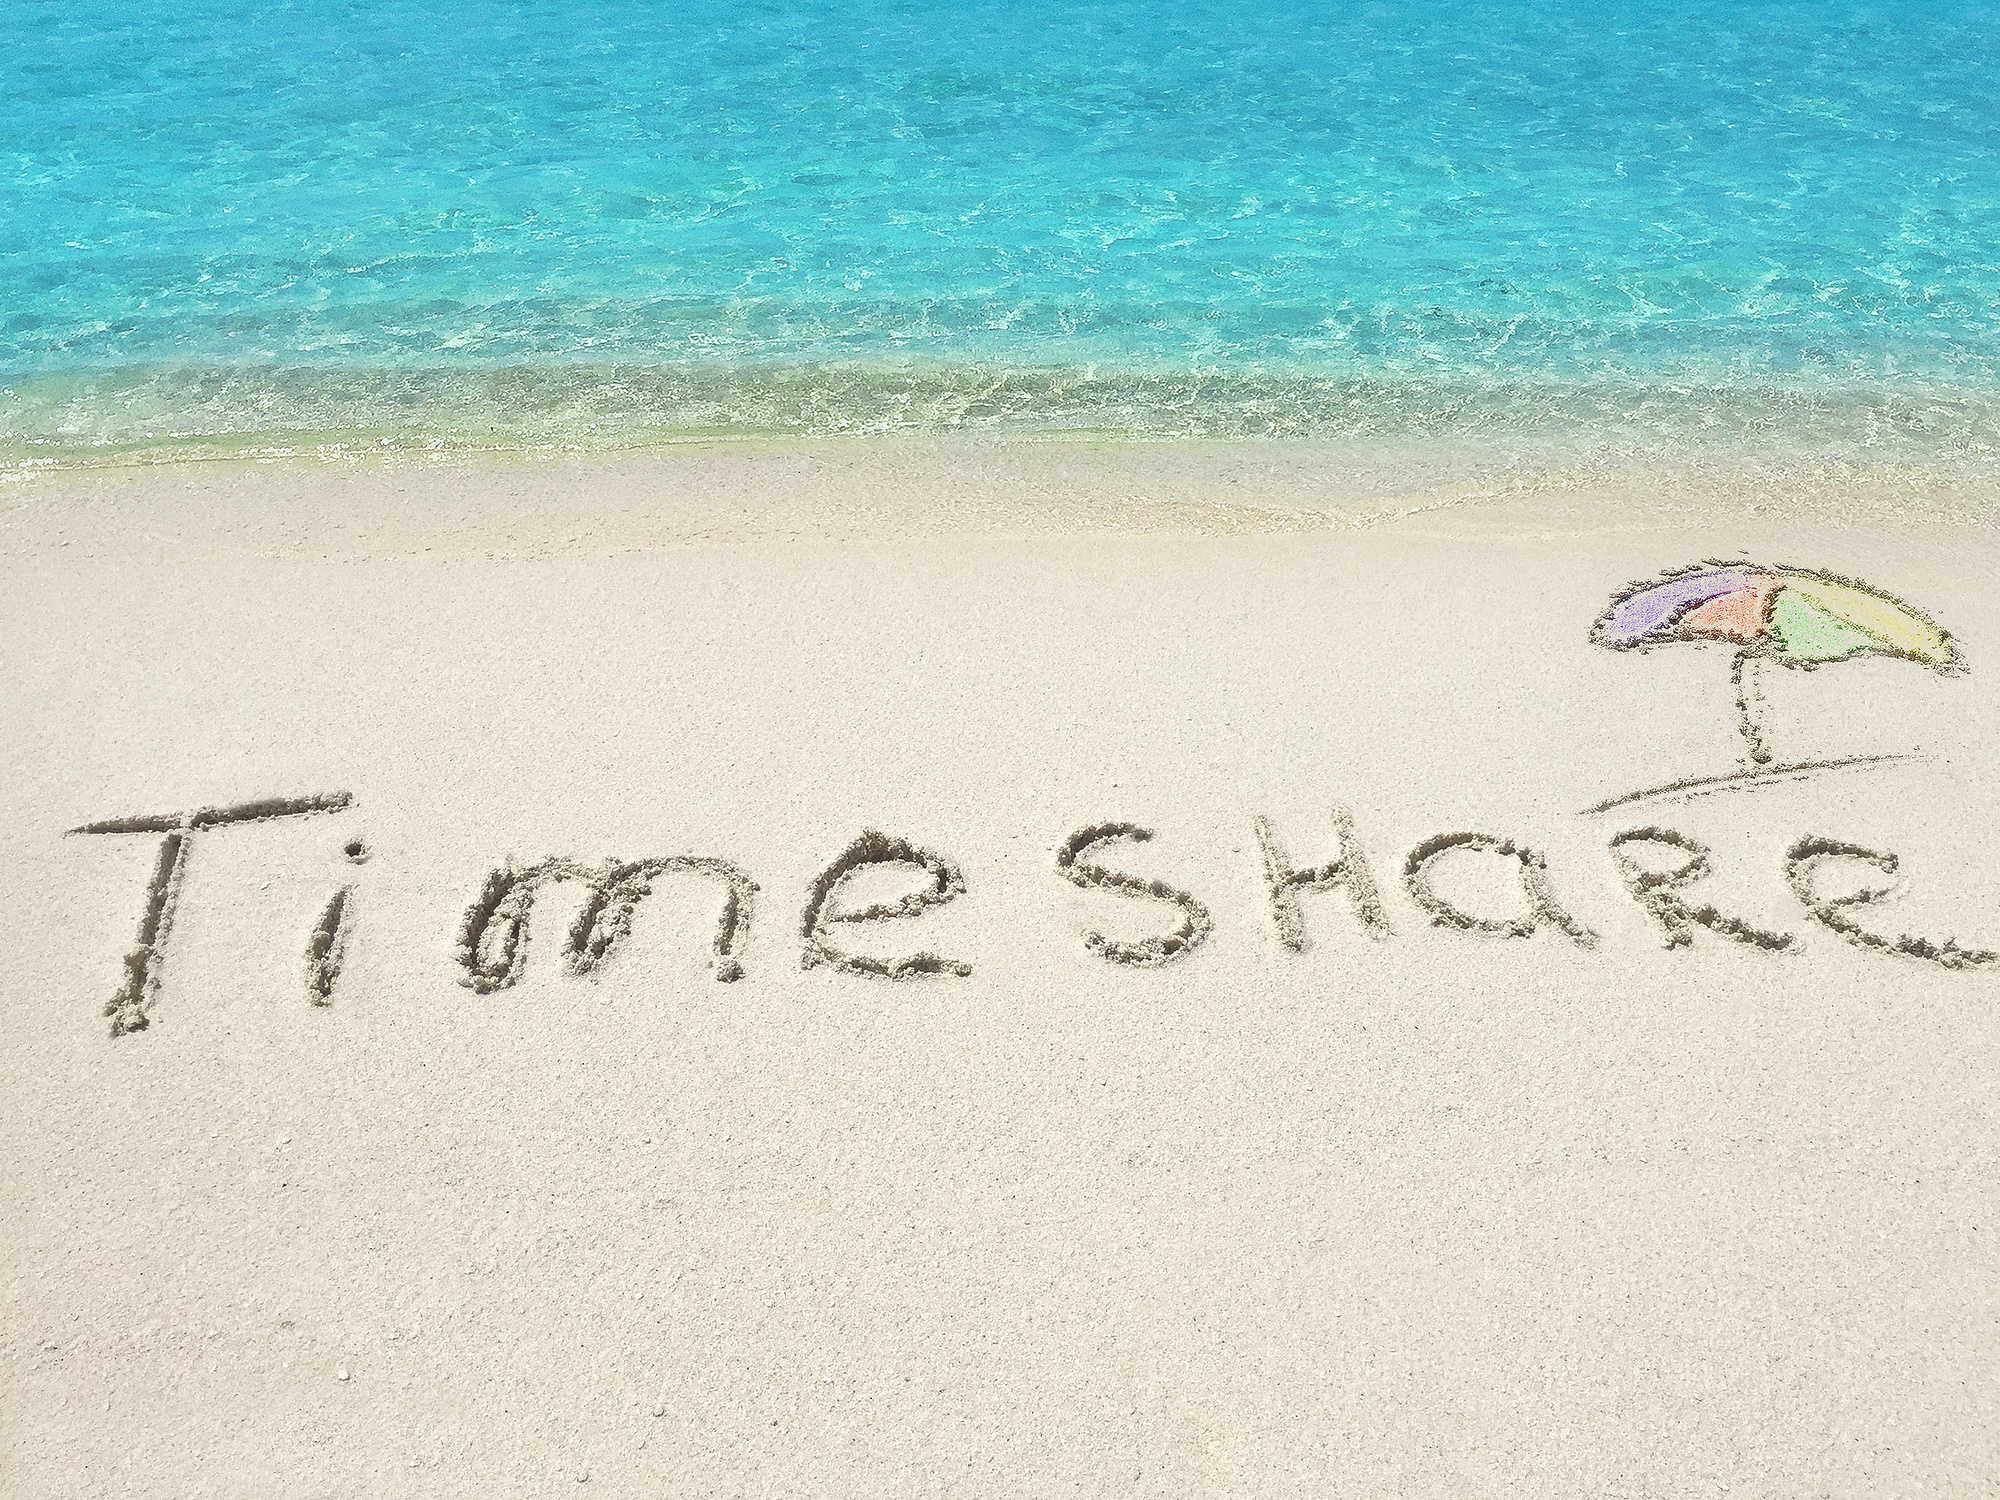 Do you frequently go on vacation, and you have been asking yourself if you should buy timeshares? Read on to learn about its many benefits.